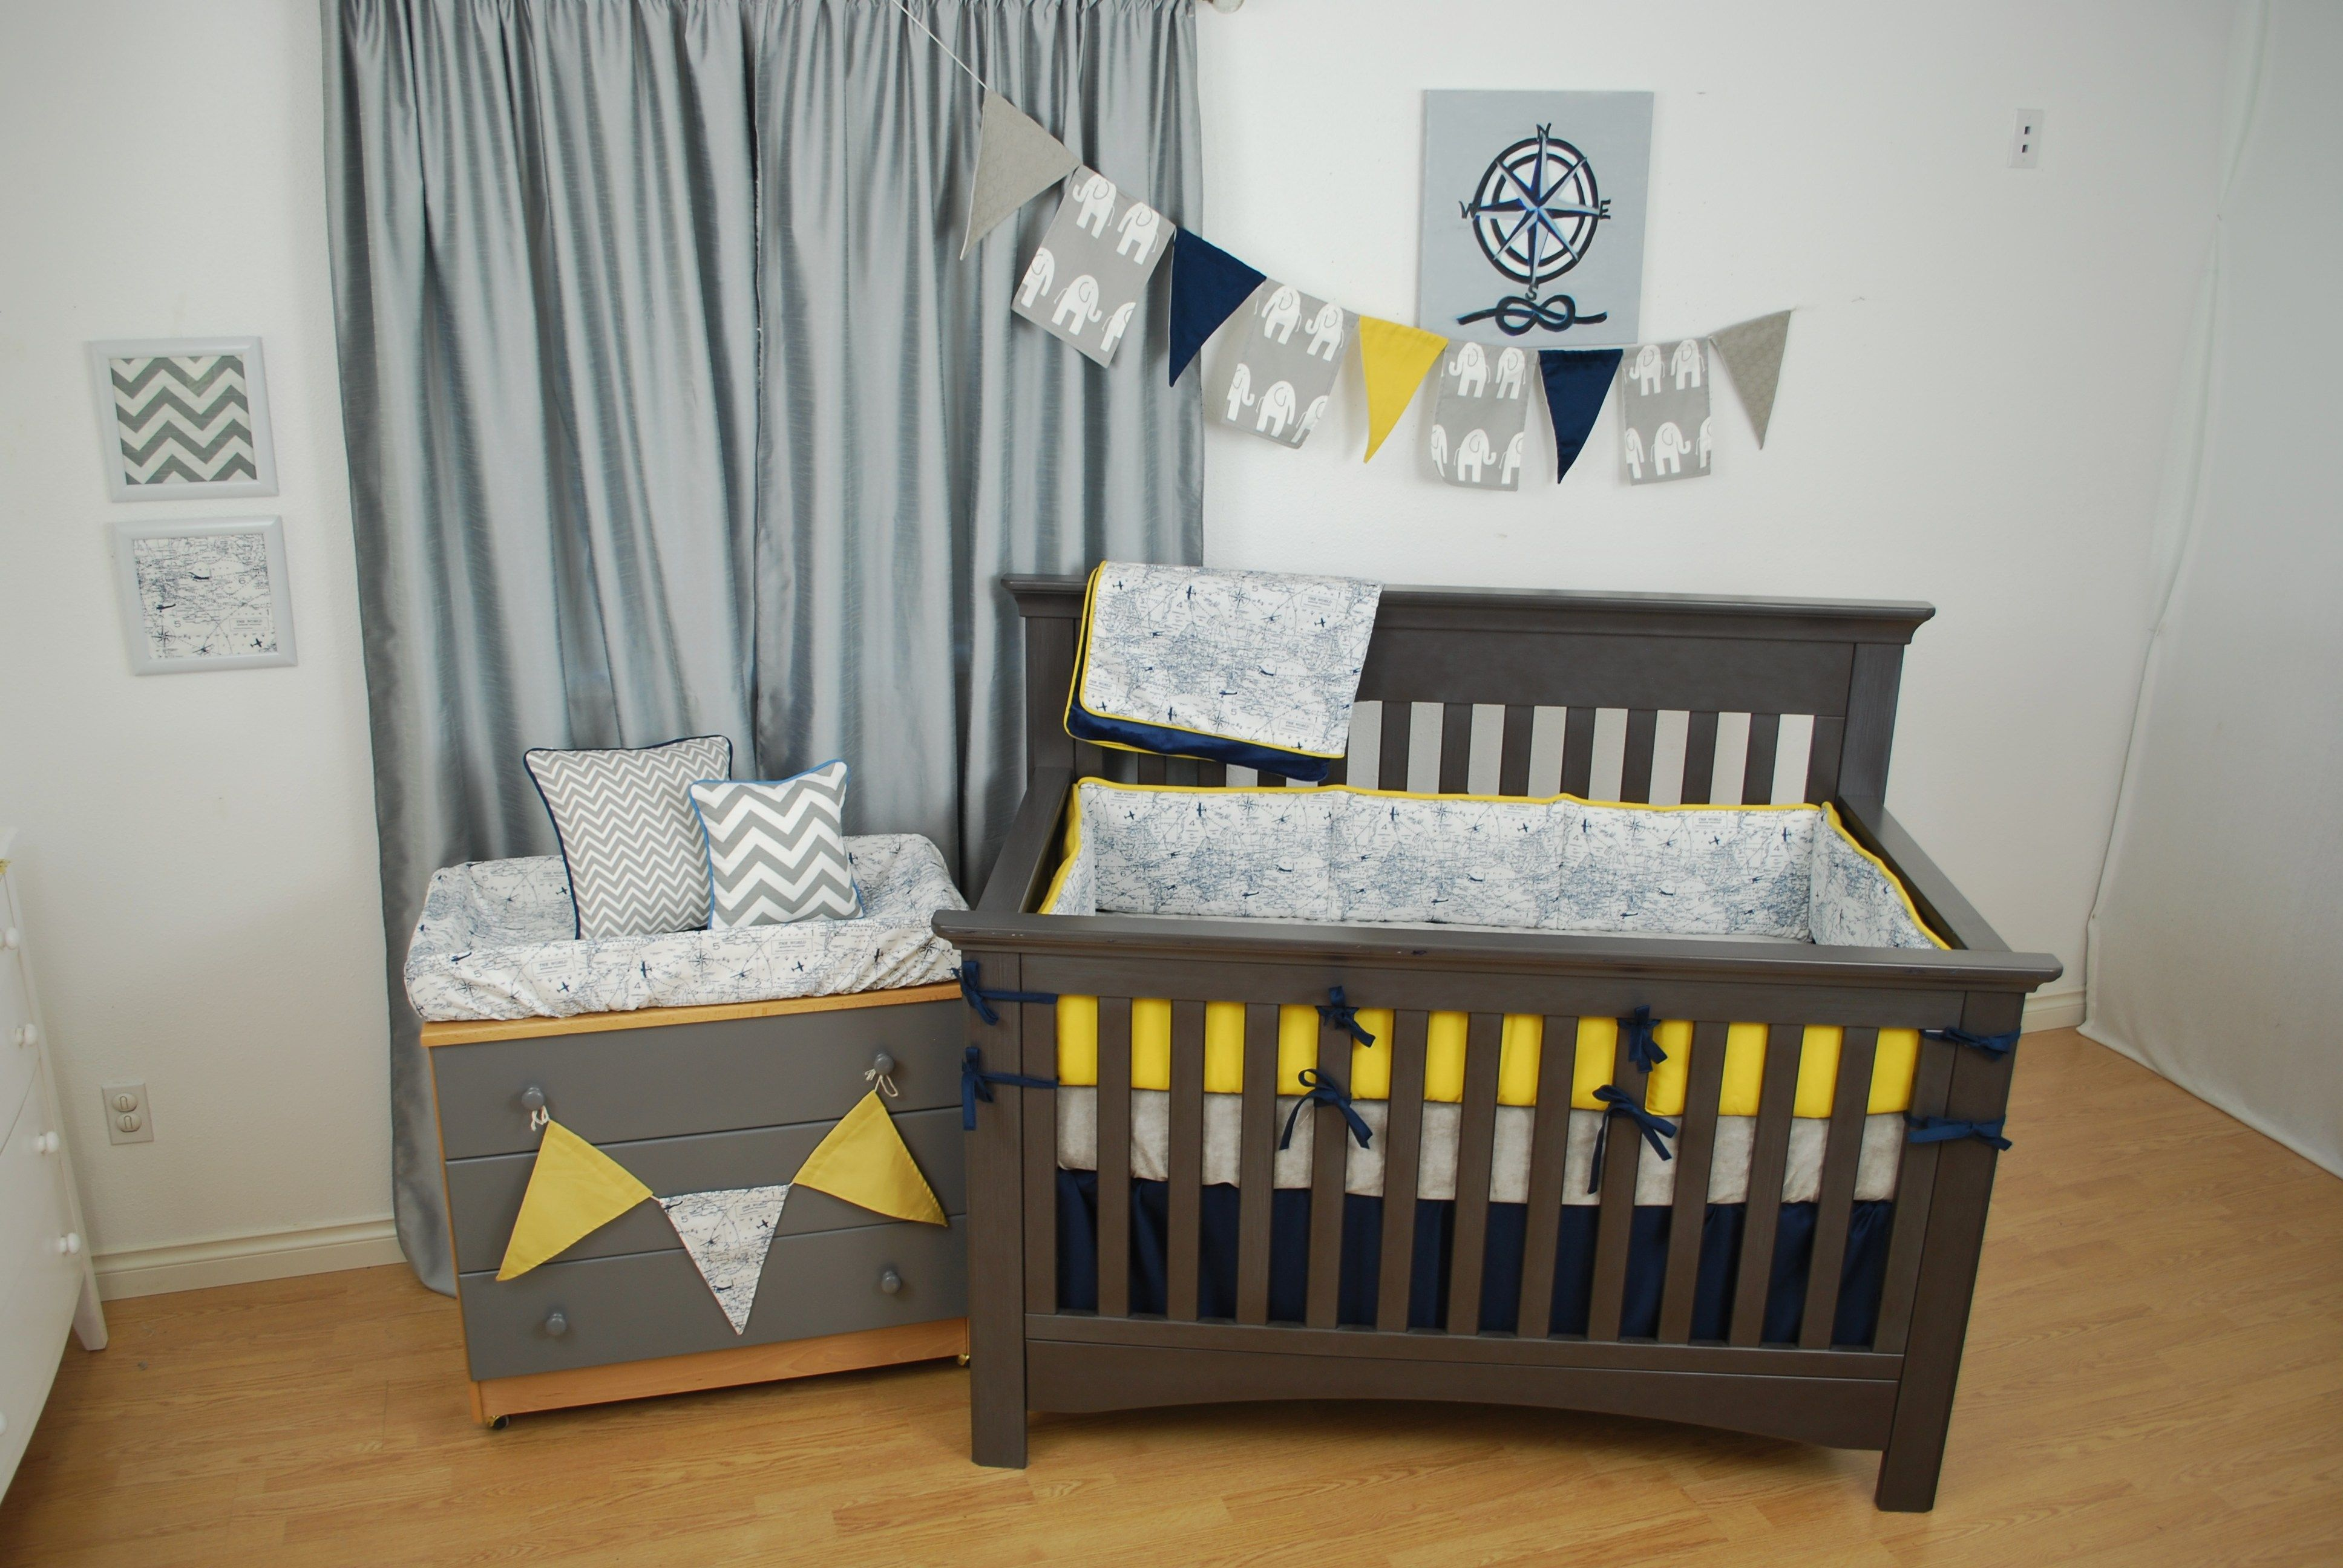 Navy World Map Crib Bedding With Bright Yellow And Grey In The Nursery